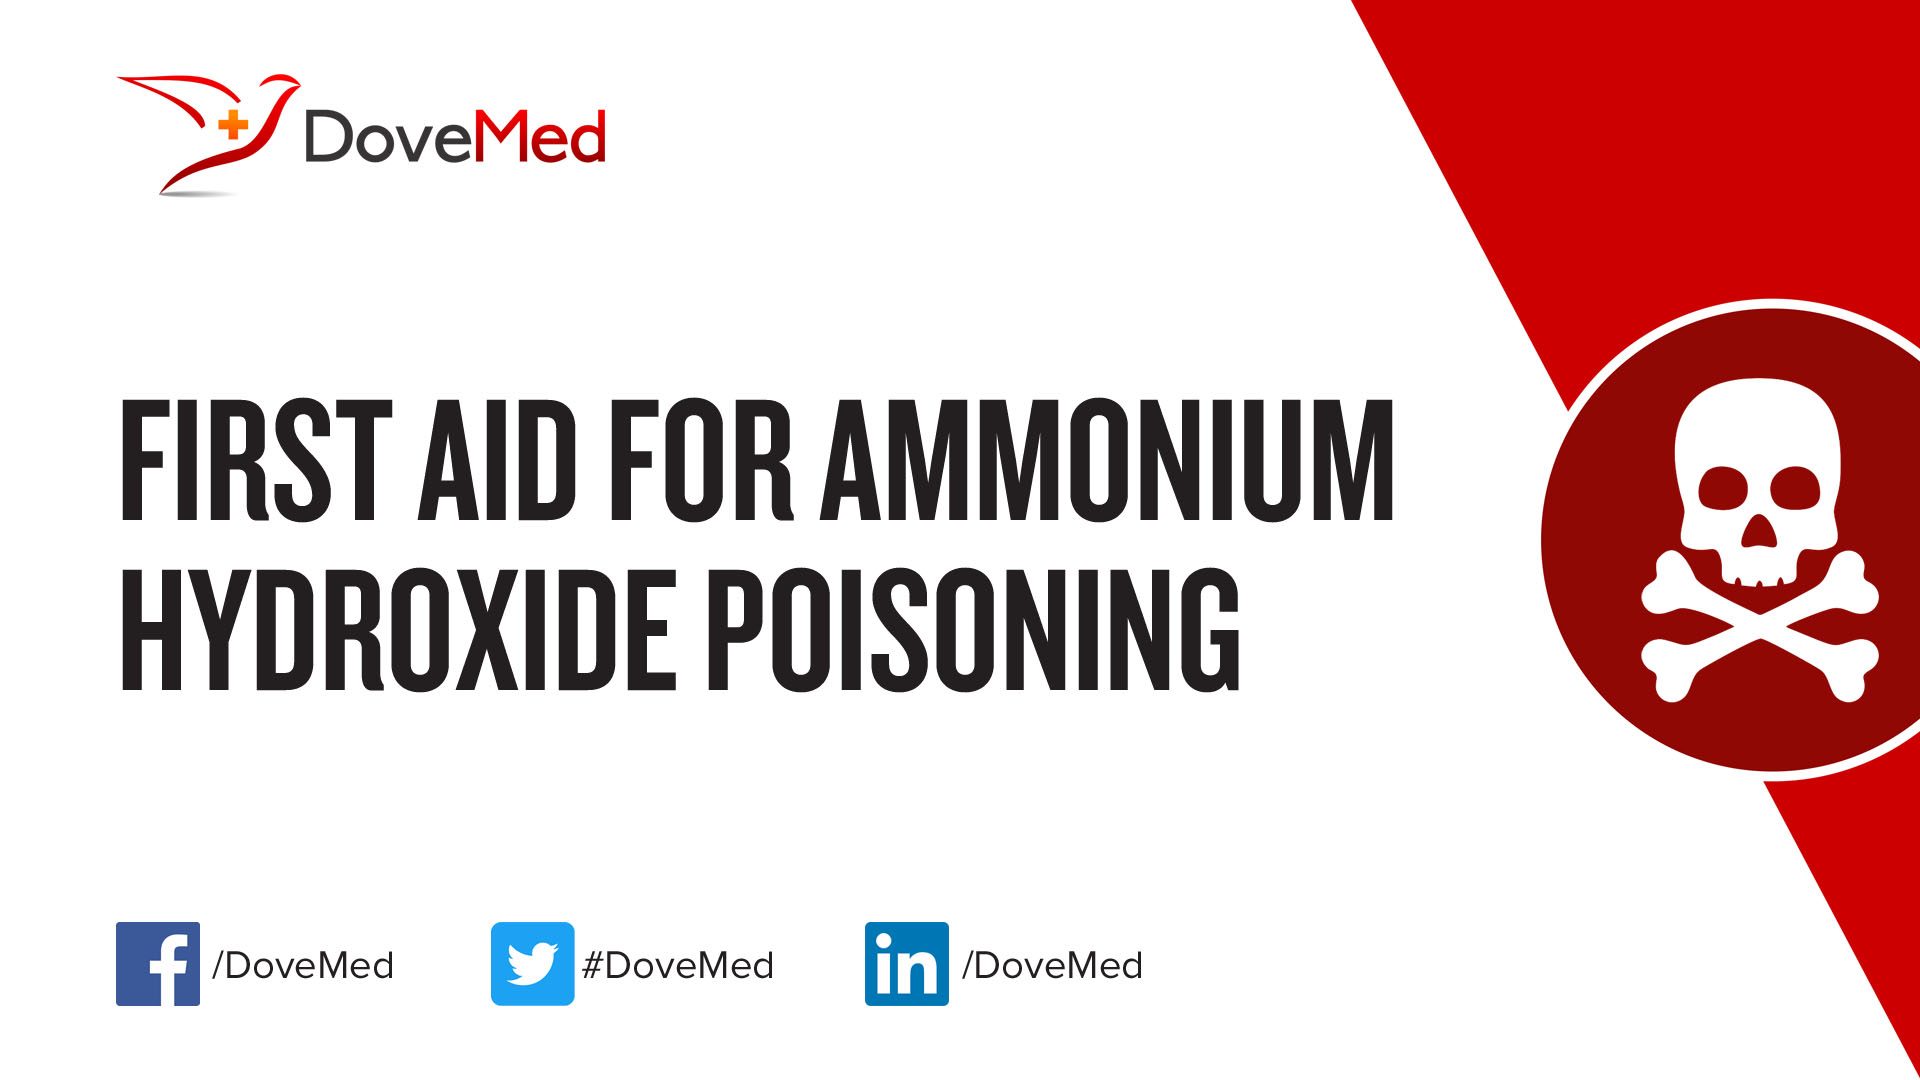 First Aid For Ammonium Hydroxide Poisoning